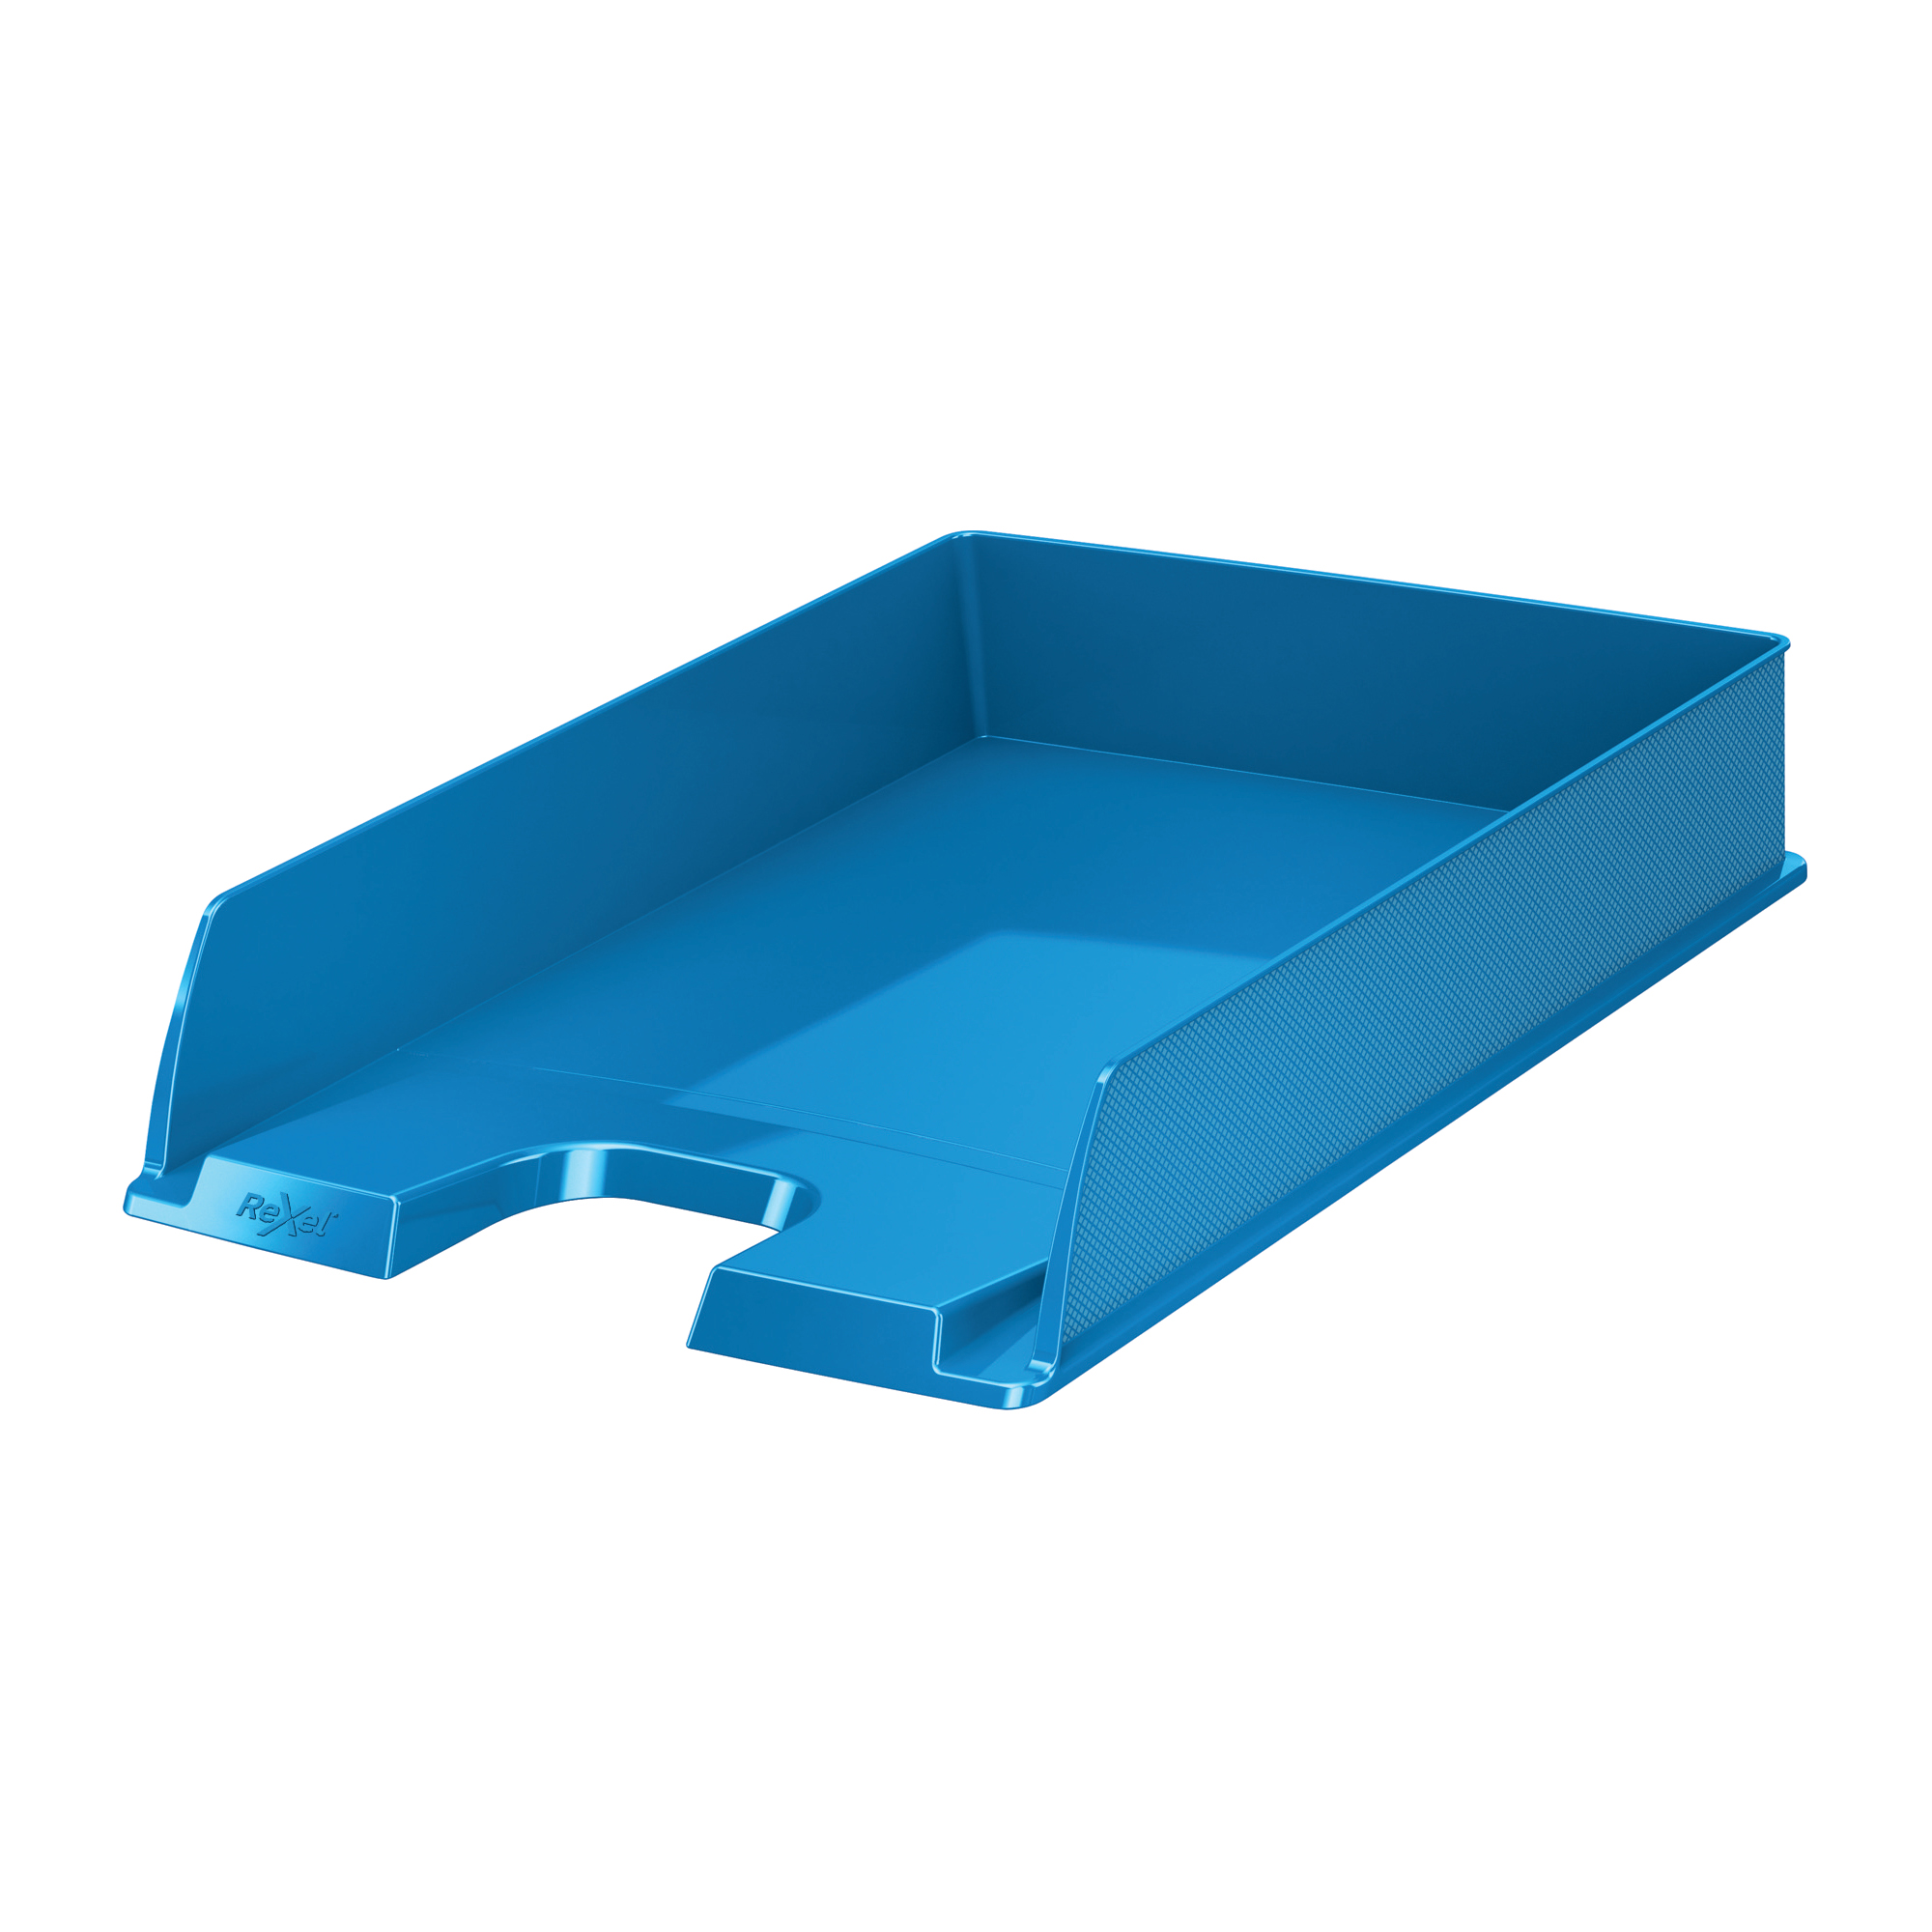 Desktop trays or organizers Rexel Choices Letter Tray PP A4 254x350x61mm Blue Ref 2115601